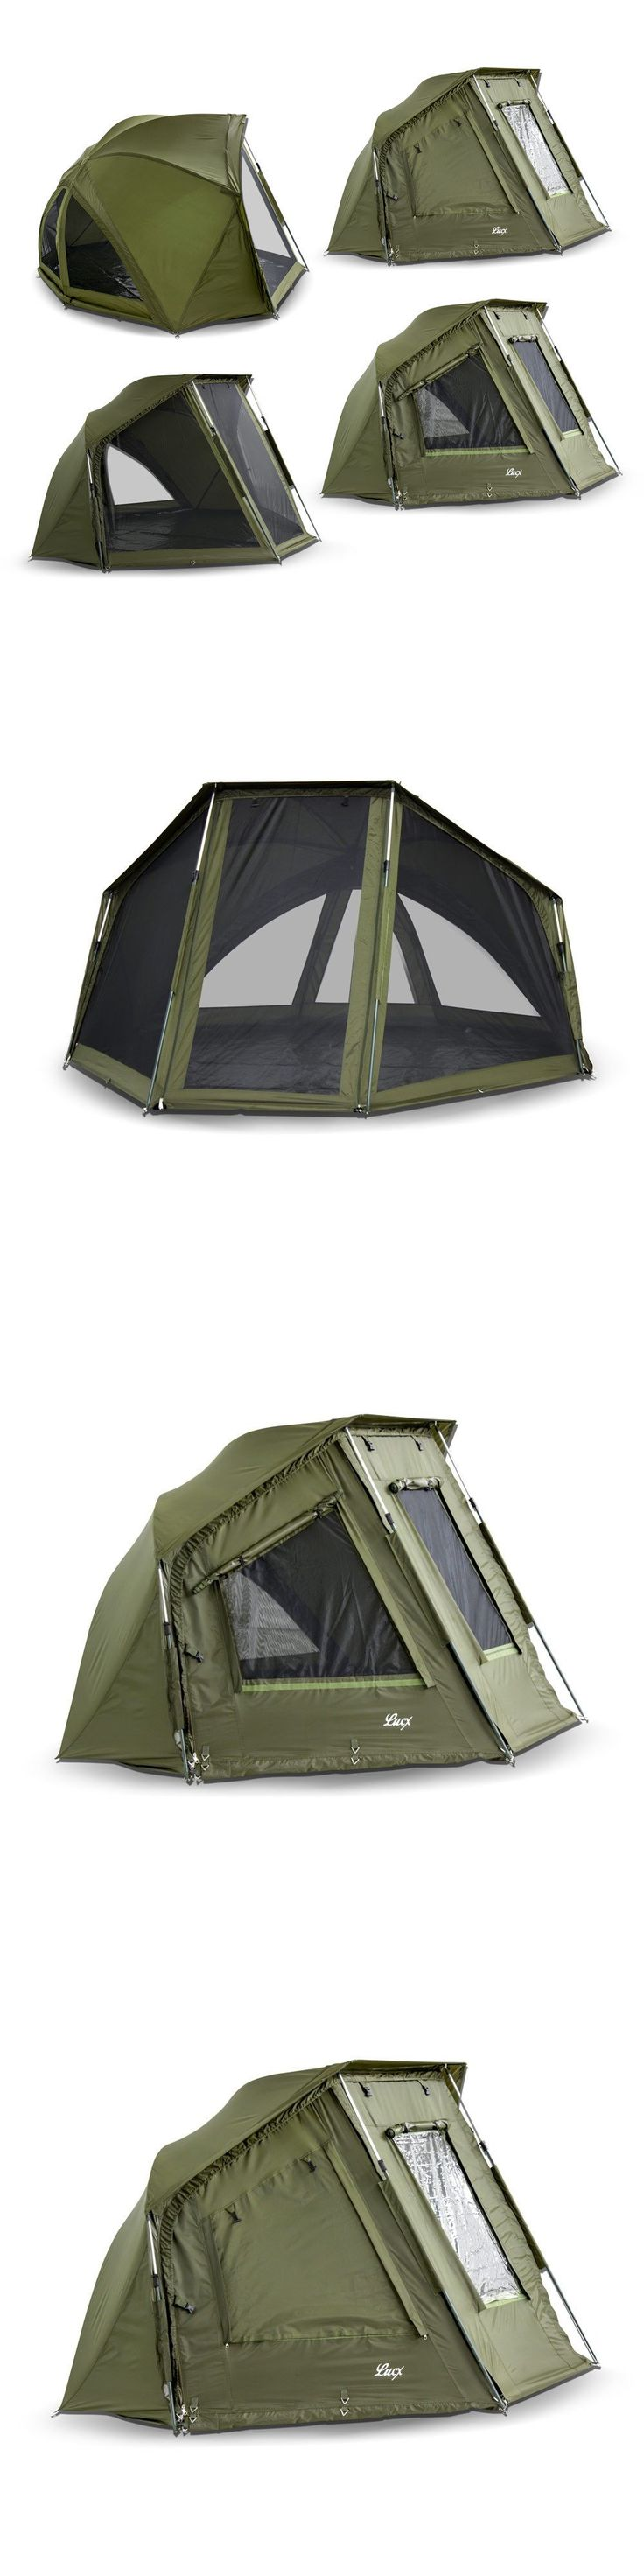 Tents and Shelters 72670: Lucx Wiesel Brolly Angel Umbrella Fishing Tent Carp Tent Bivvy Carp Shelter -> BUY IT NOW ONLY: $228.6 on eBay!